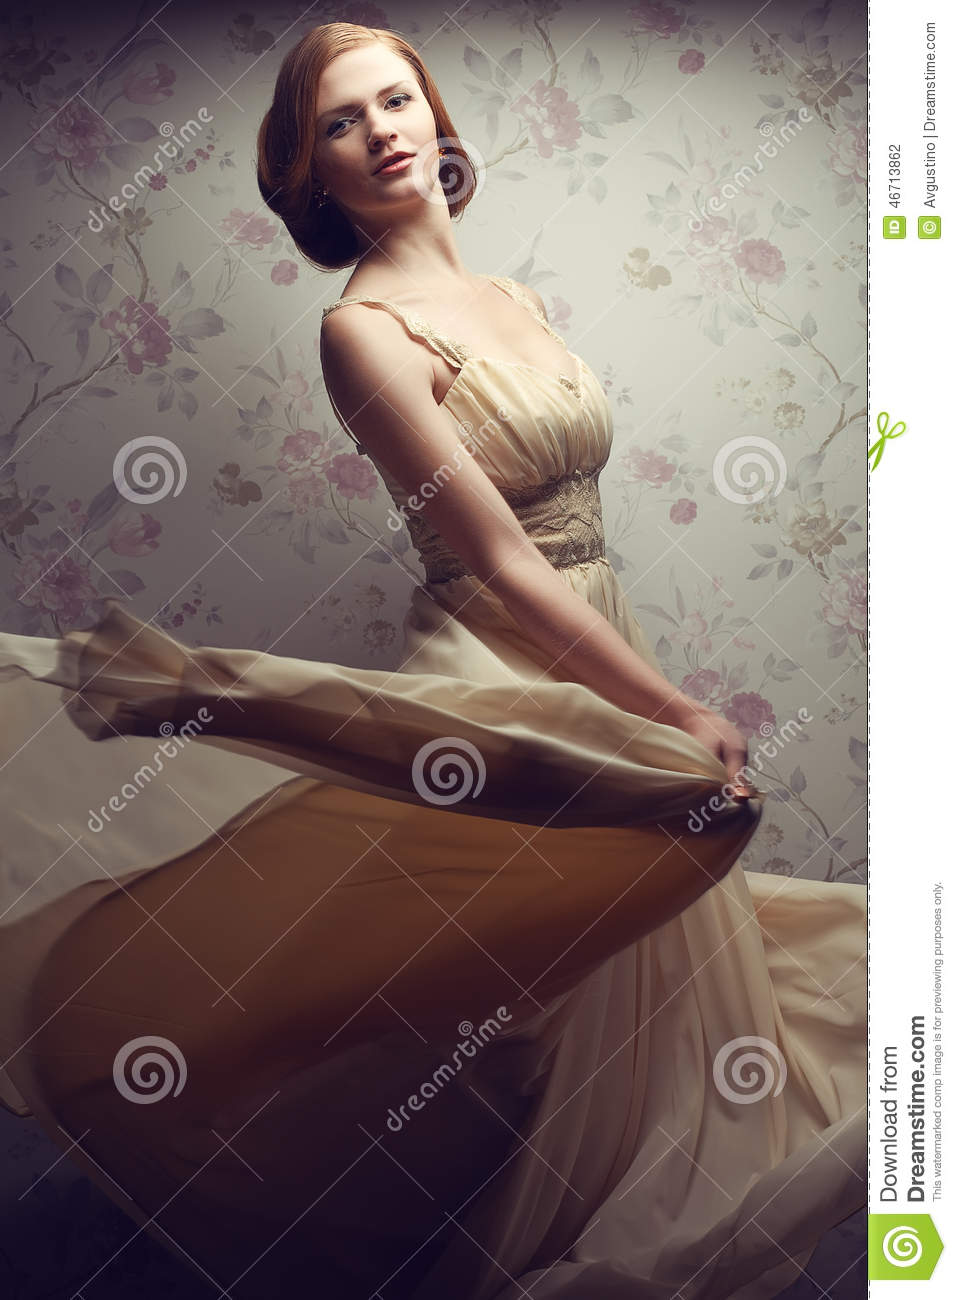 Vintage portrait of happy glamorous red-haired girl in cool dress